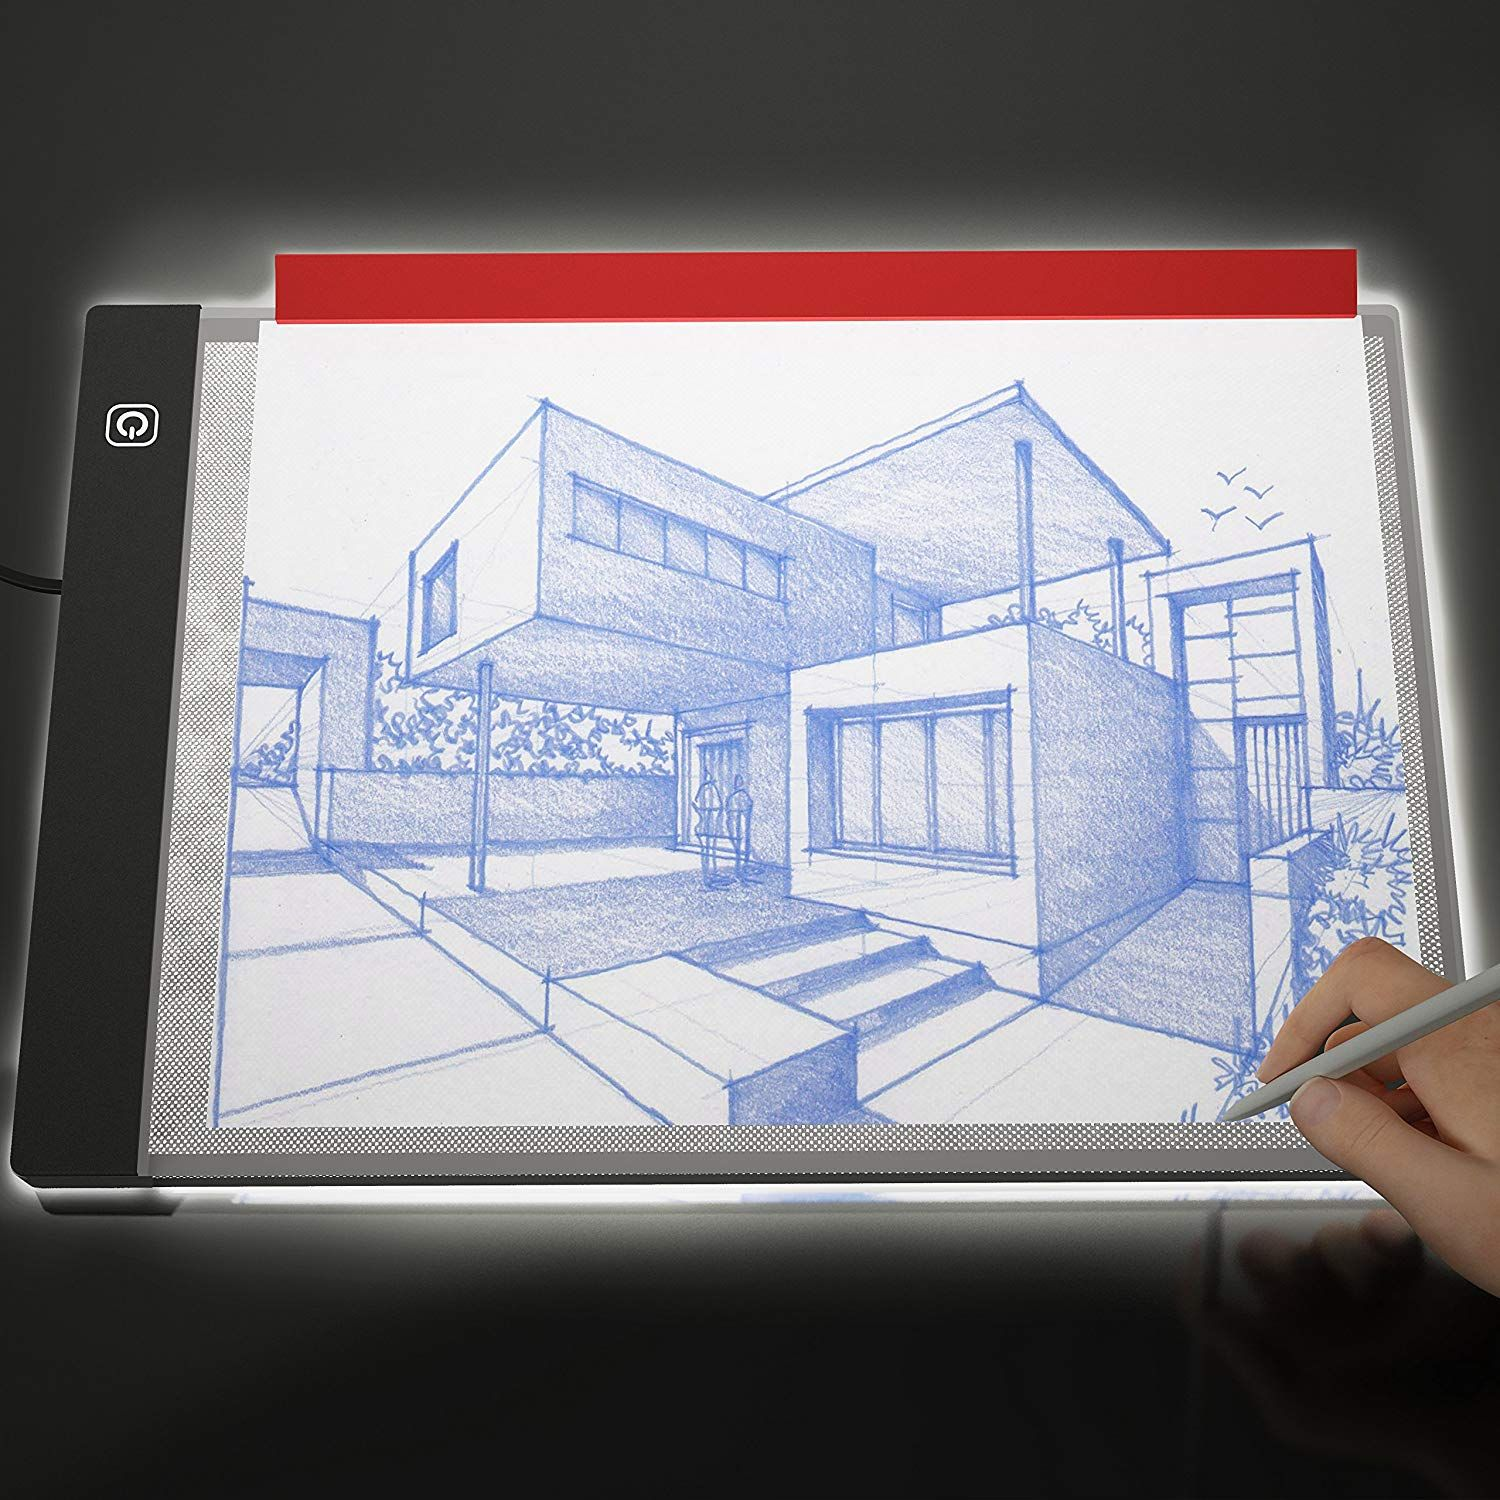 Best Light Box For Tracing Ultra Thin Portable Led Light Pad With Advanced Filter To Prevent Eye Fatigu Light Box For Tracing Portable Led Lights Well Lights